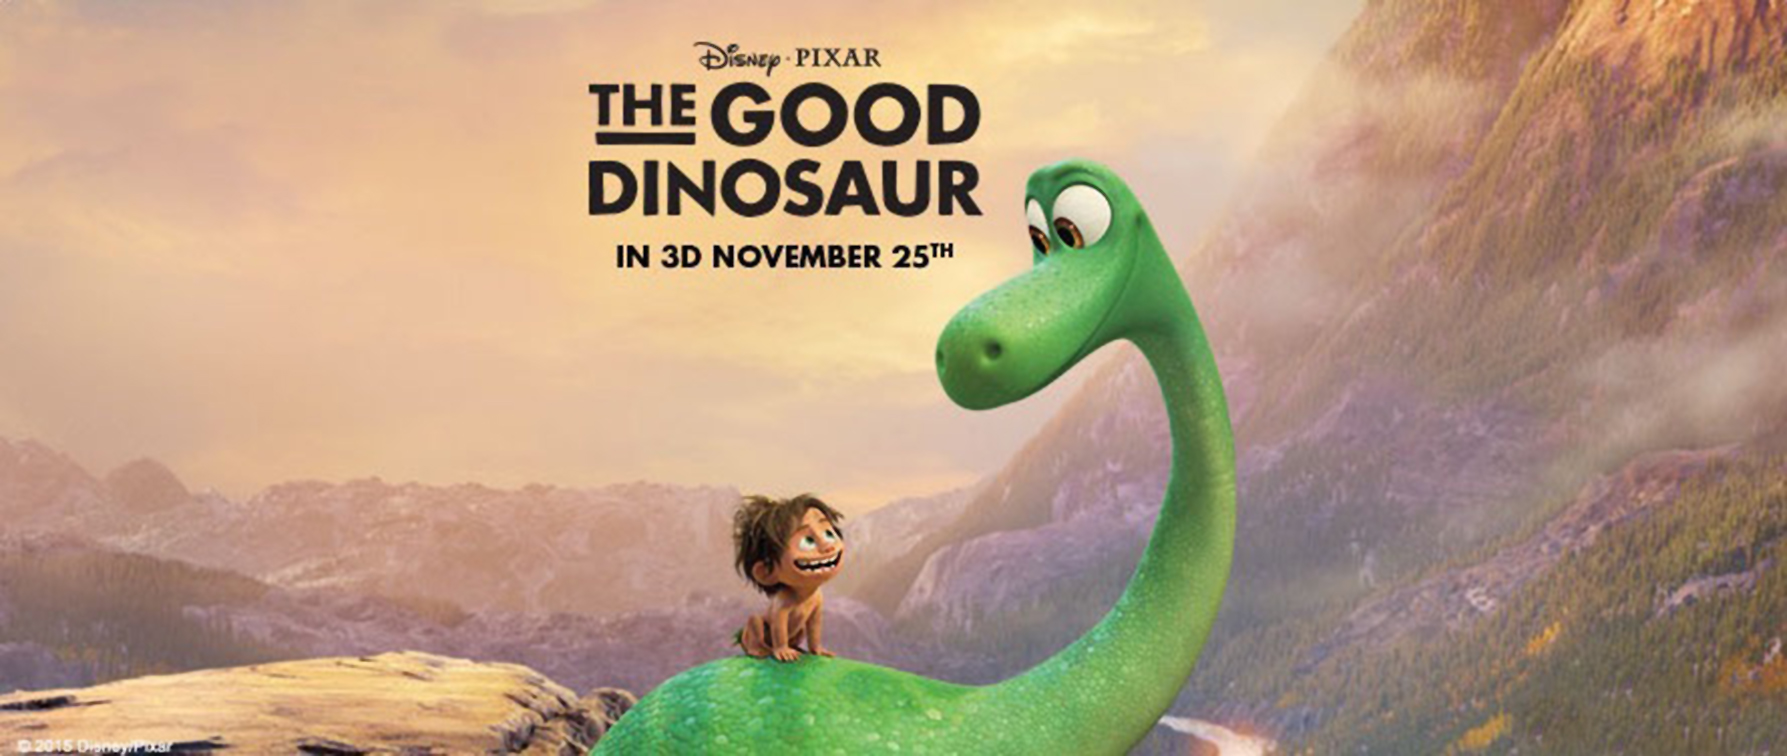 Triceratops The Good Dinosaur: I Am Your Target Demographic